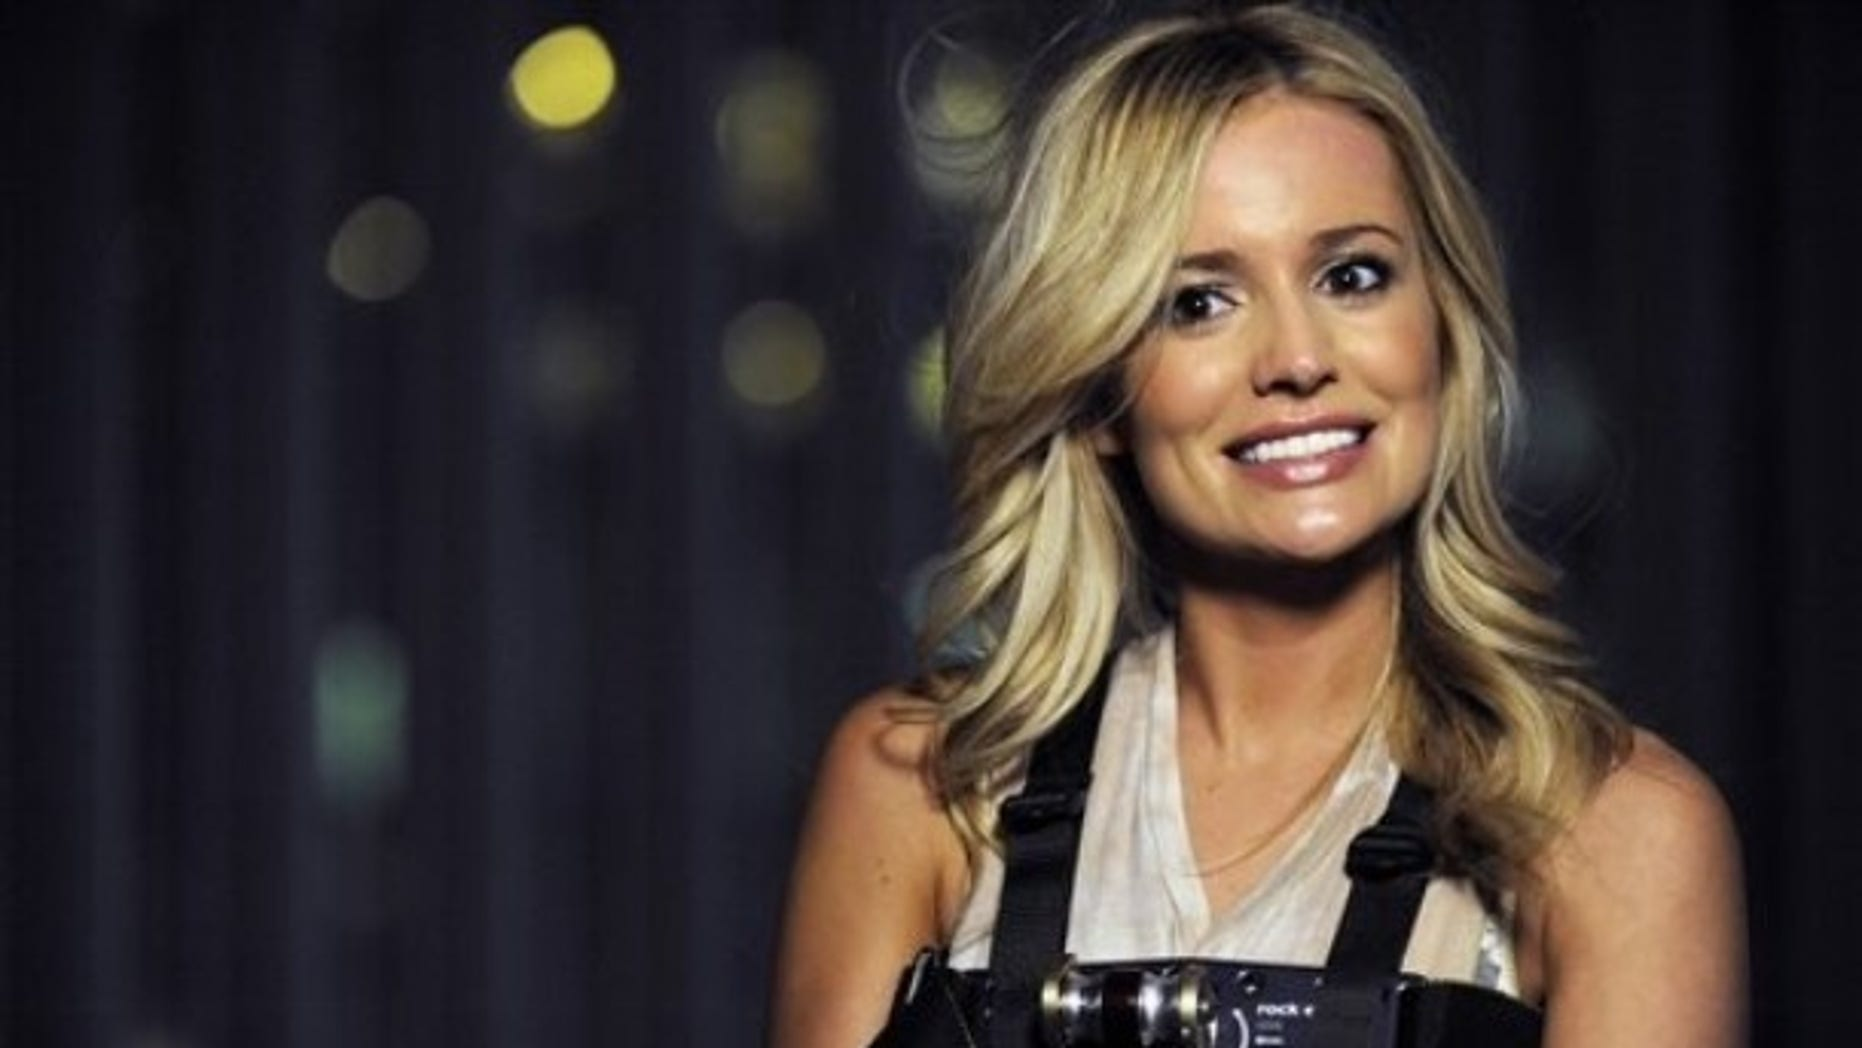 """In this March 2012 photo released by ABC shows Emily Maynard, a former contestant on """"The Bachelor"""" and now the star of the latest season of """"The Bachelorette,""""  in Charlotte, N.C."""